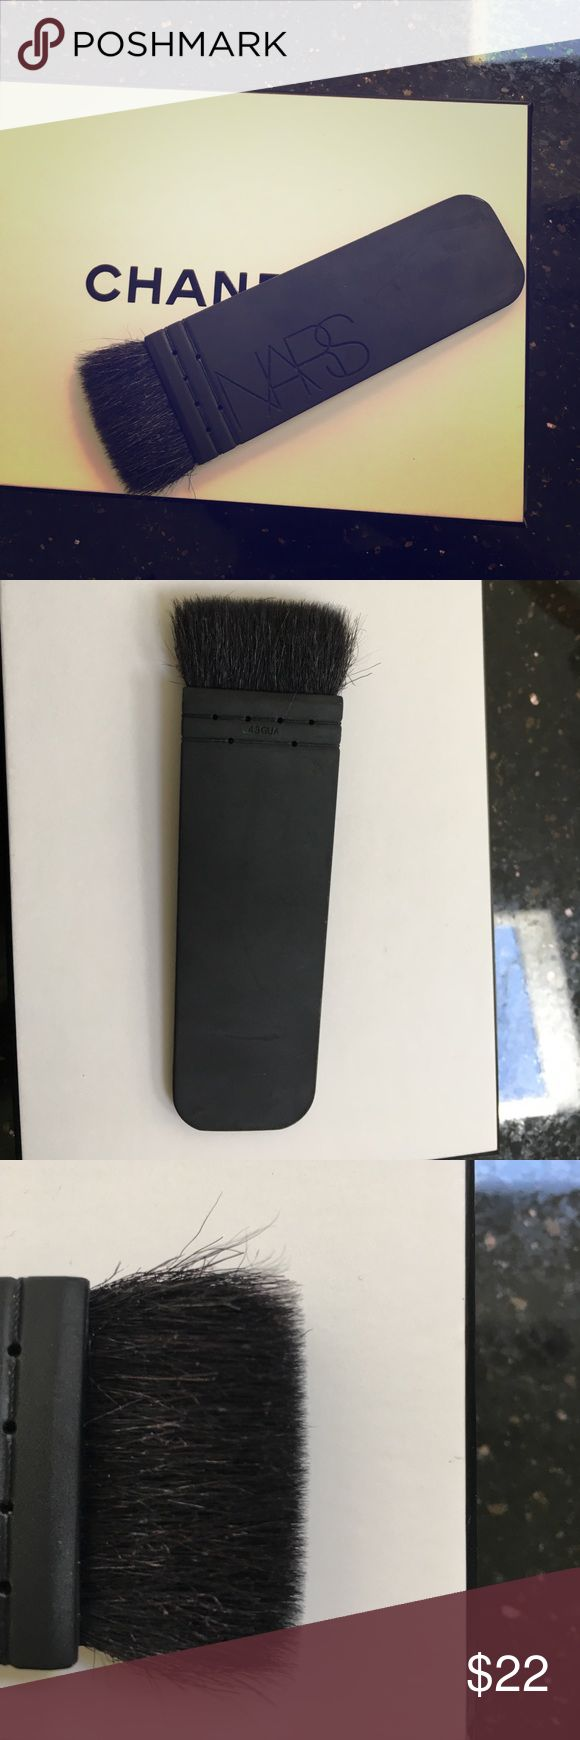 NARS Kabuki Ita Brush - contour. Sephora - A premium brush designed to define for your most distinct makeup looks. The striking silhouette is designed to create targeted contouring & strong, sculpted cheeks w/a soft-to-the-touch handle. Used but in great condition! LOVE this brush for getting that amazing sculpted look!However I just purchased a new Artis set & so I'm parting with this. Purchased @Sephora for $55. Yes it sheds, it's made of goat hair. Has been cleansed and sanitized but will…